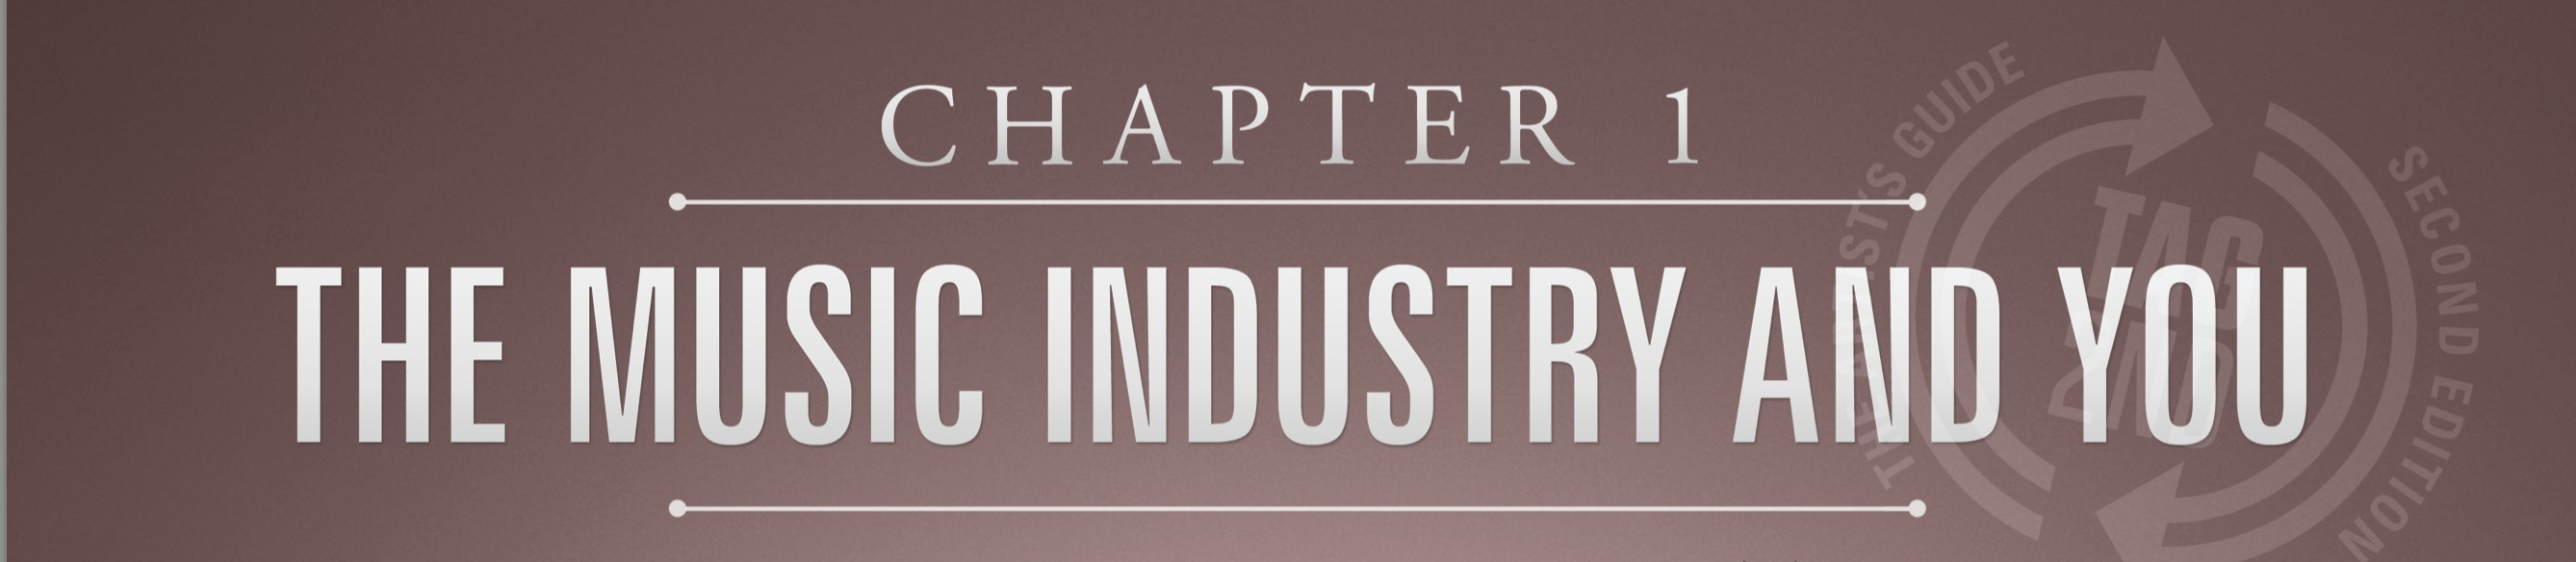 chapter 1, artists guide, the music industry and you